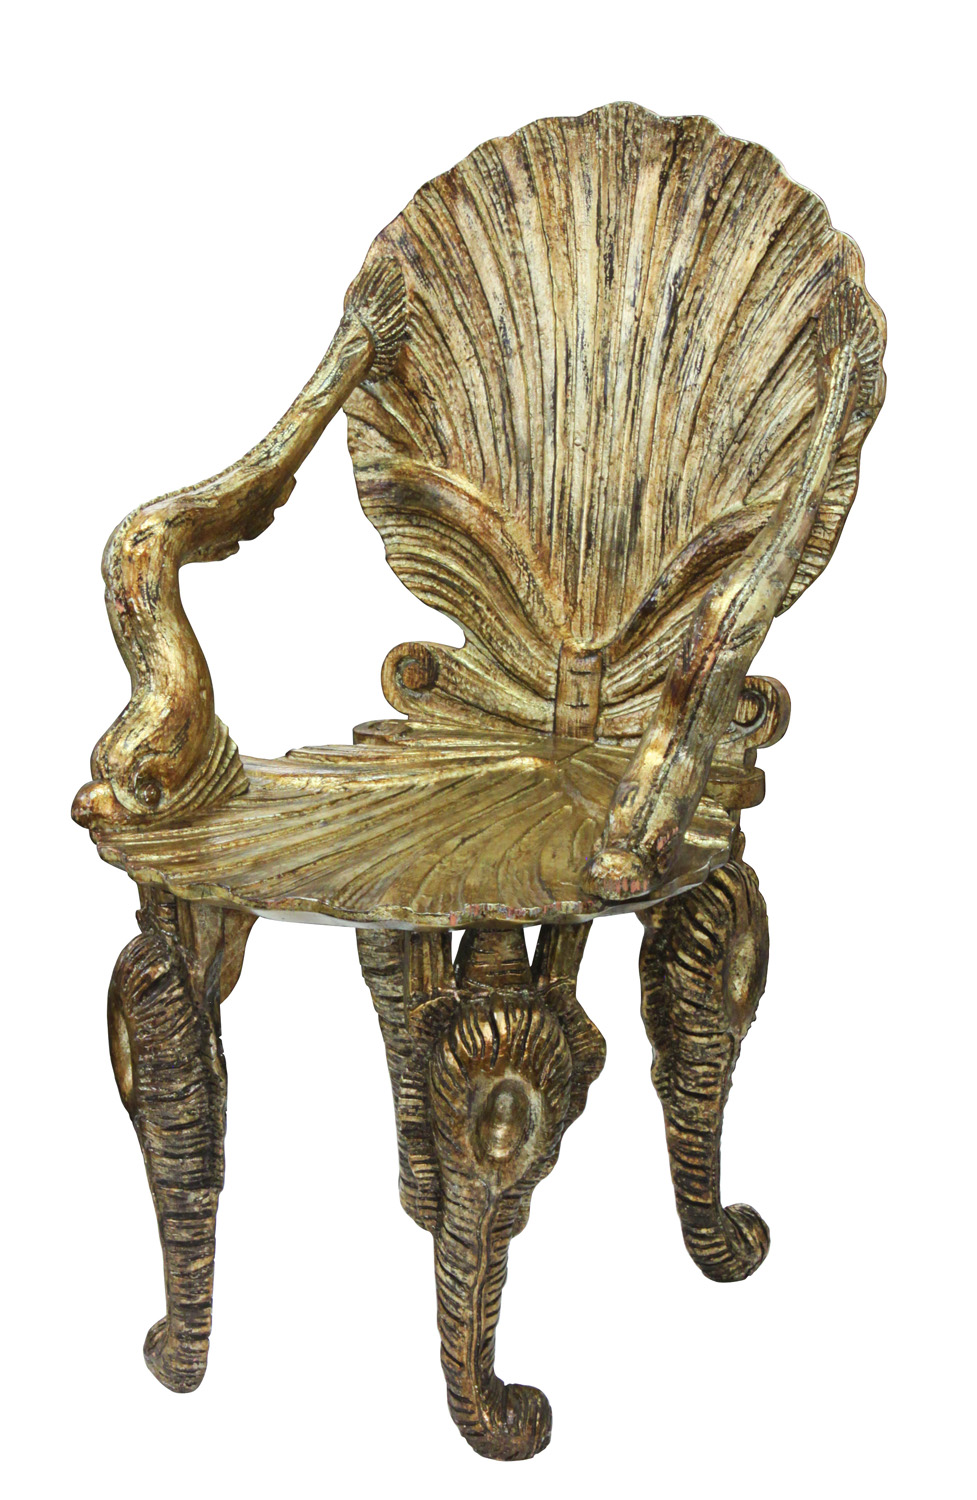 70s 250 set8 grotto giltwood diningchairs158 detail1 hires.jpg